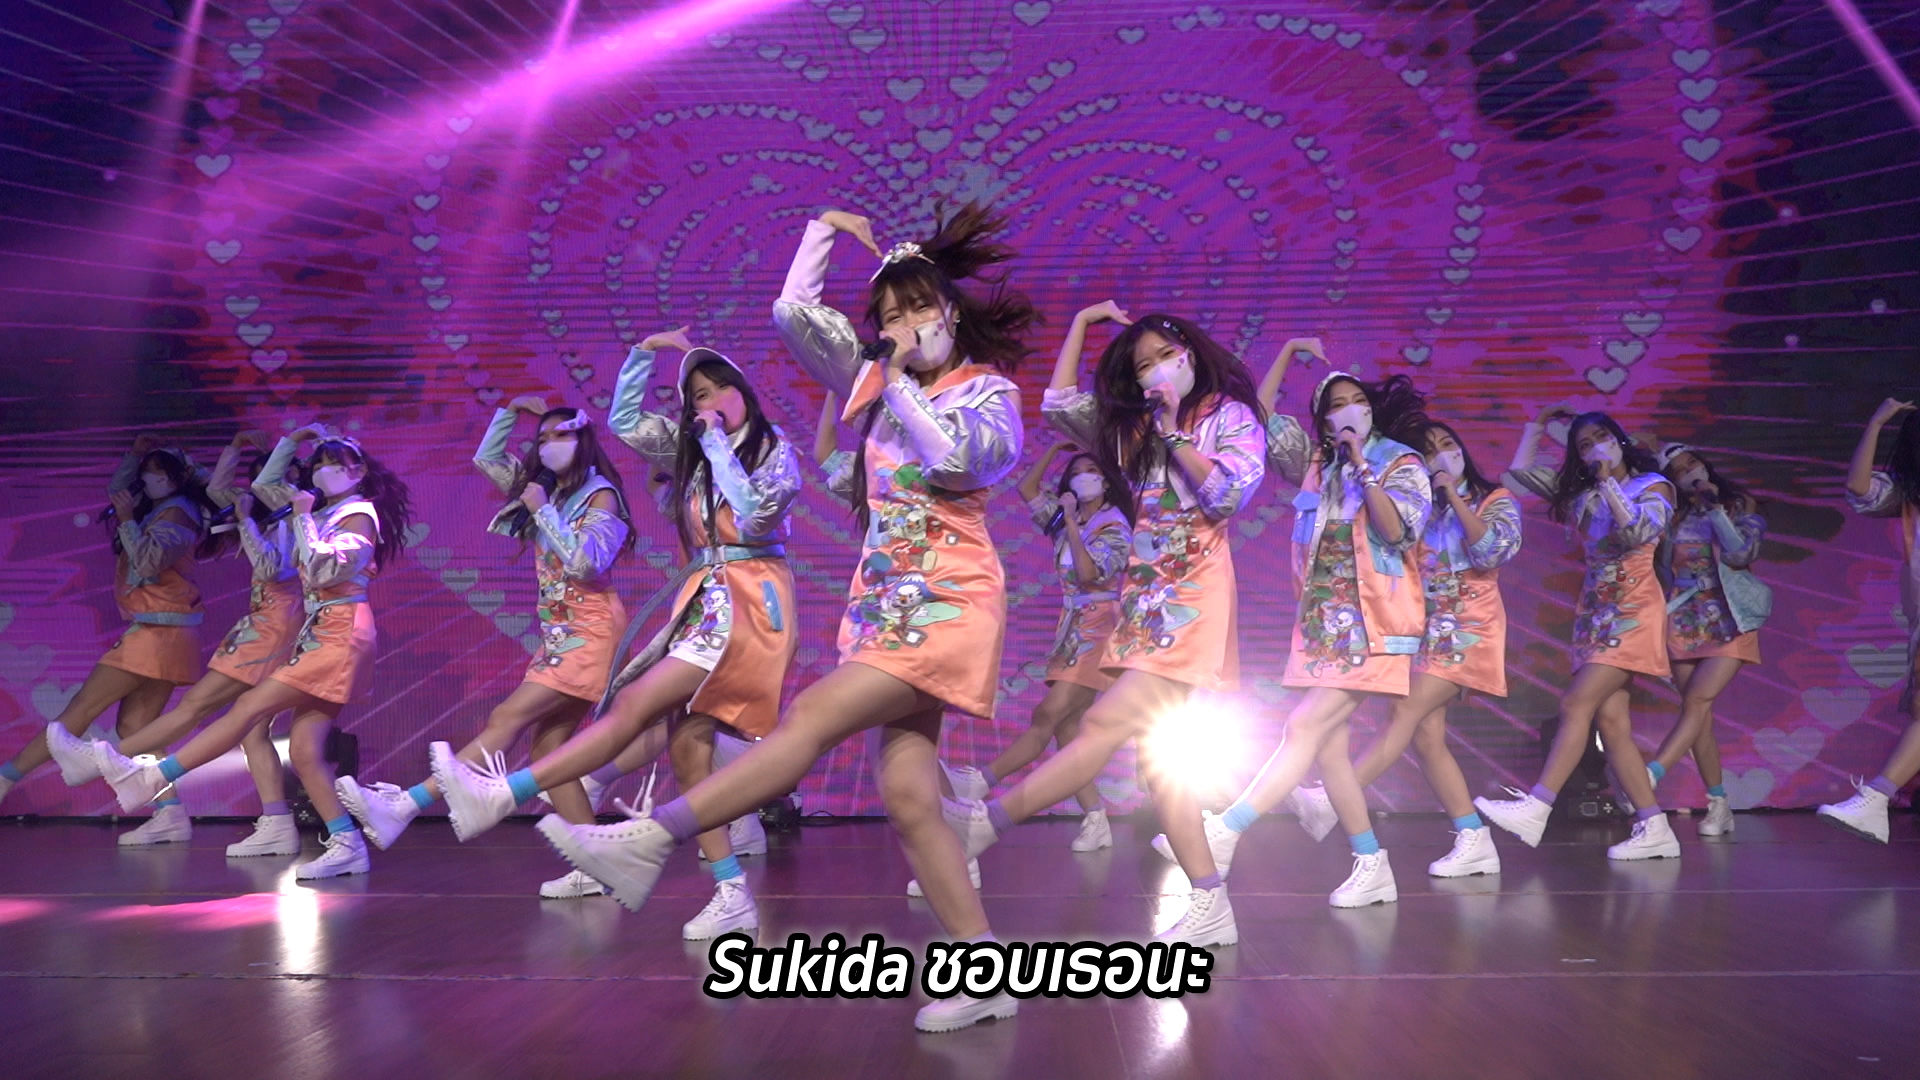 BNK48『好きだ 好きだ 好きだ(Sukida Sukida Sukida)』 ©AKB48 GROUP ASIA FESTIVAL 2021 ONLINE executive committee